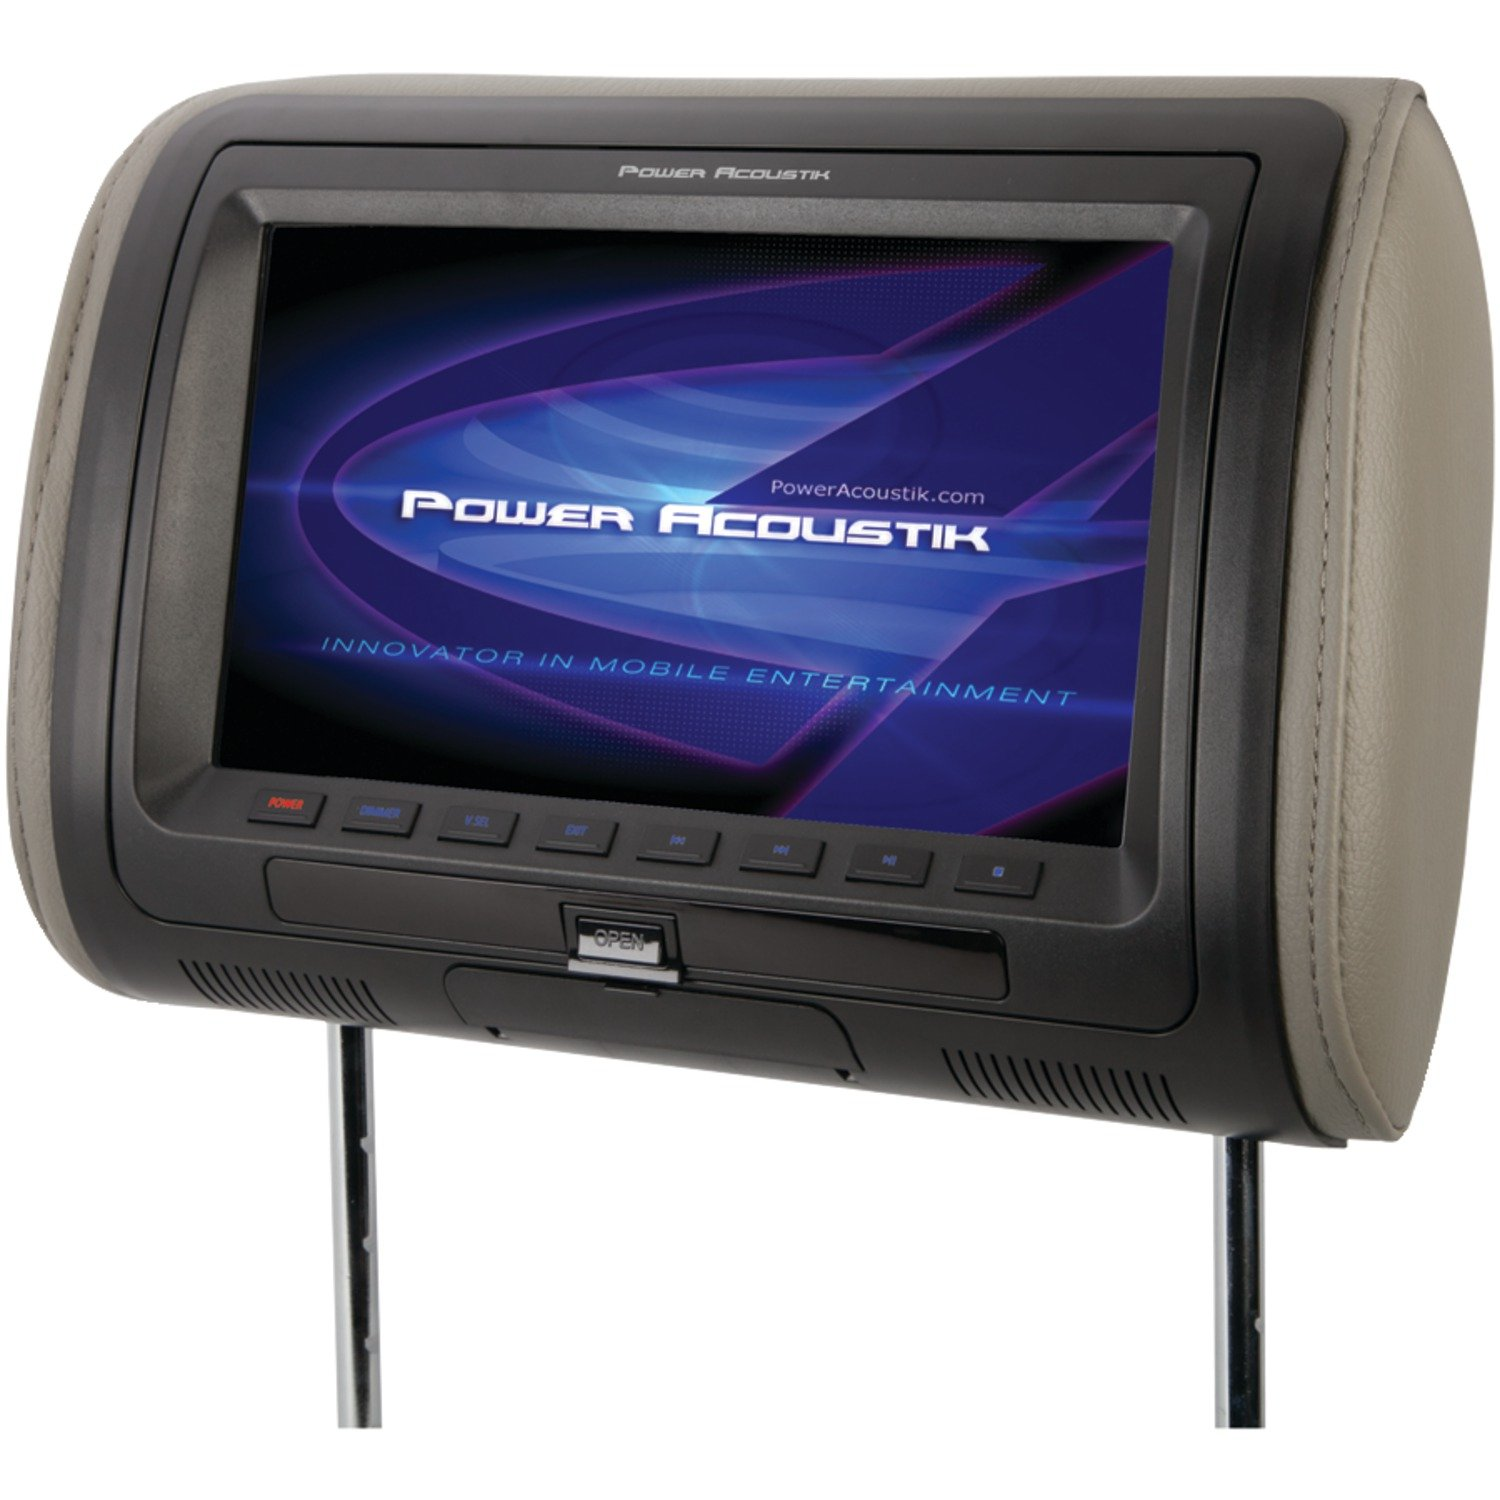 Power Acoustik 7'' Universal Headrest Monitor With Ir & Fm Transmitters (HDVD-71HD)